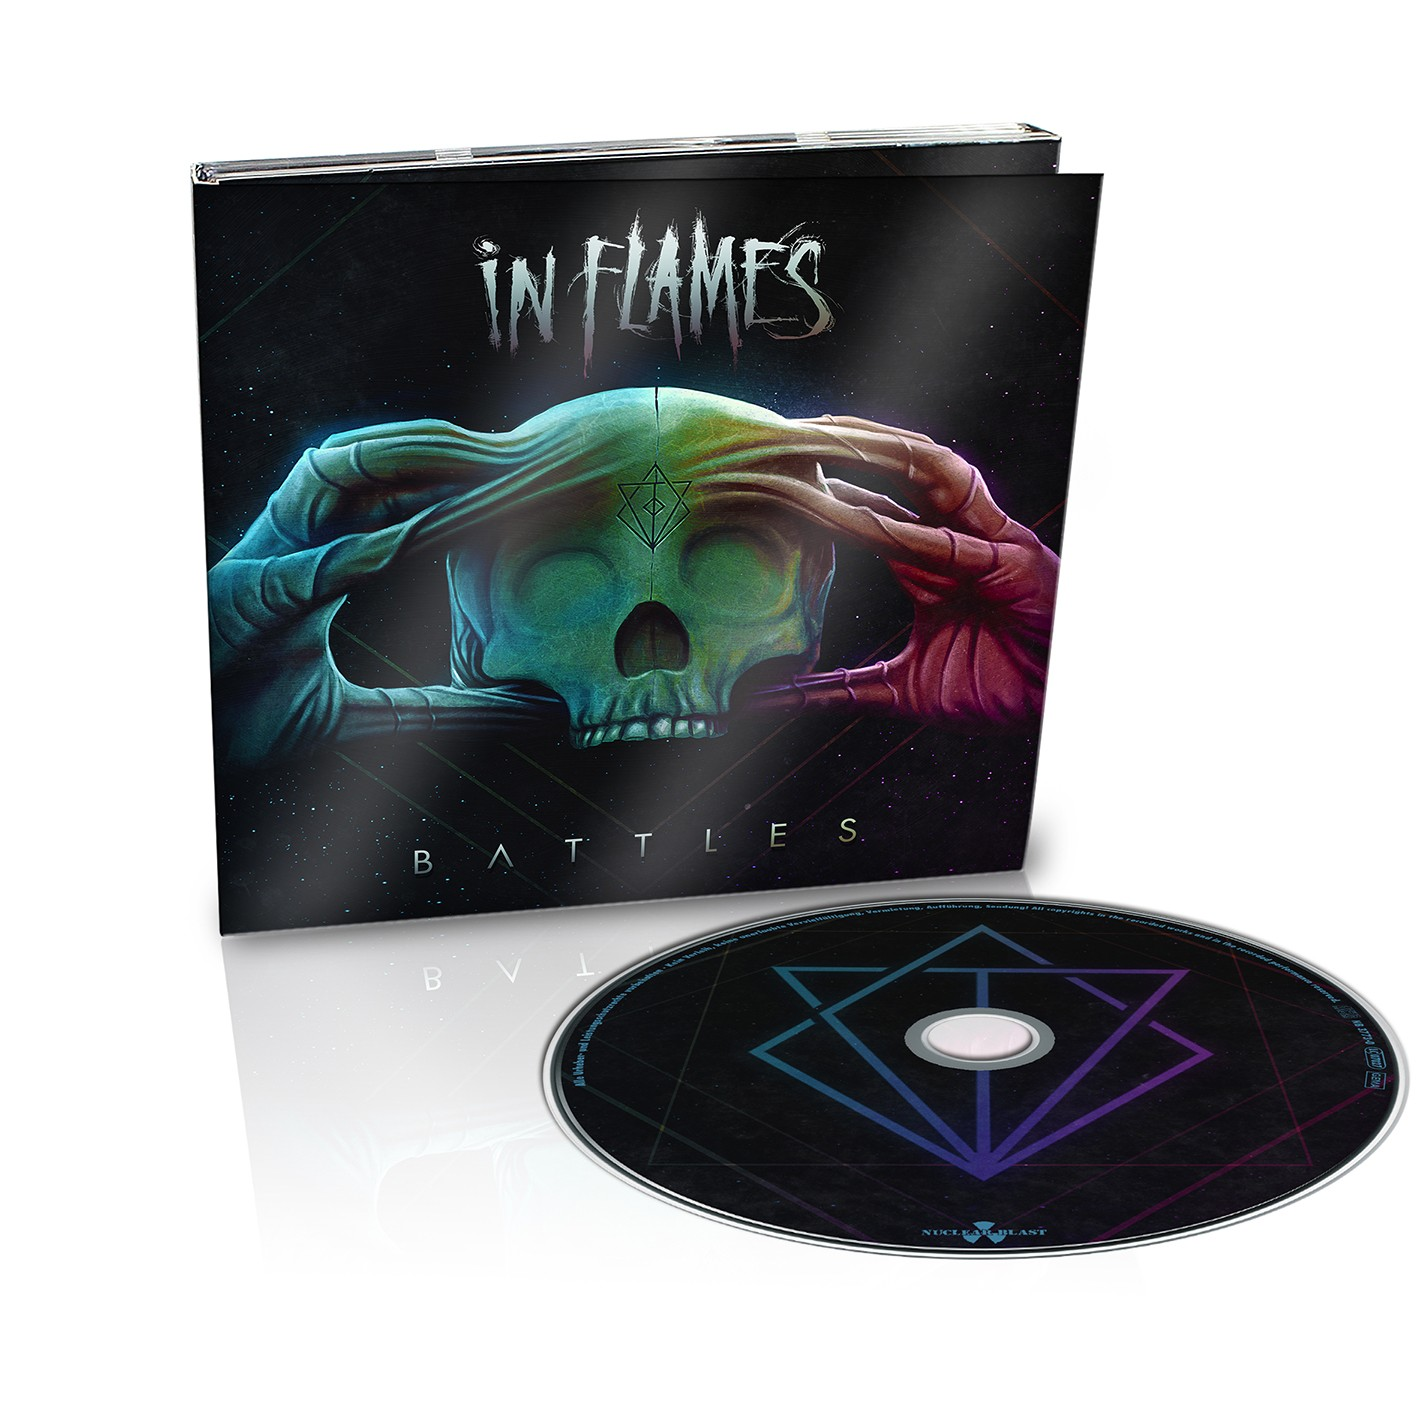 In Flames - Battles - CD DigiPak